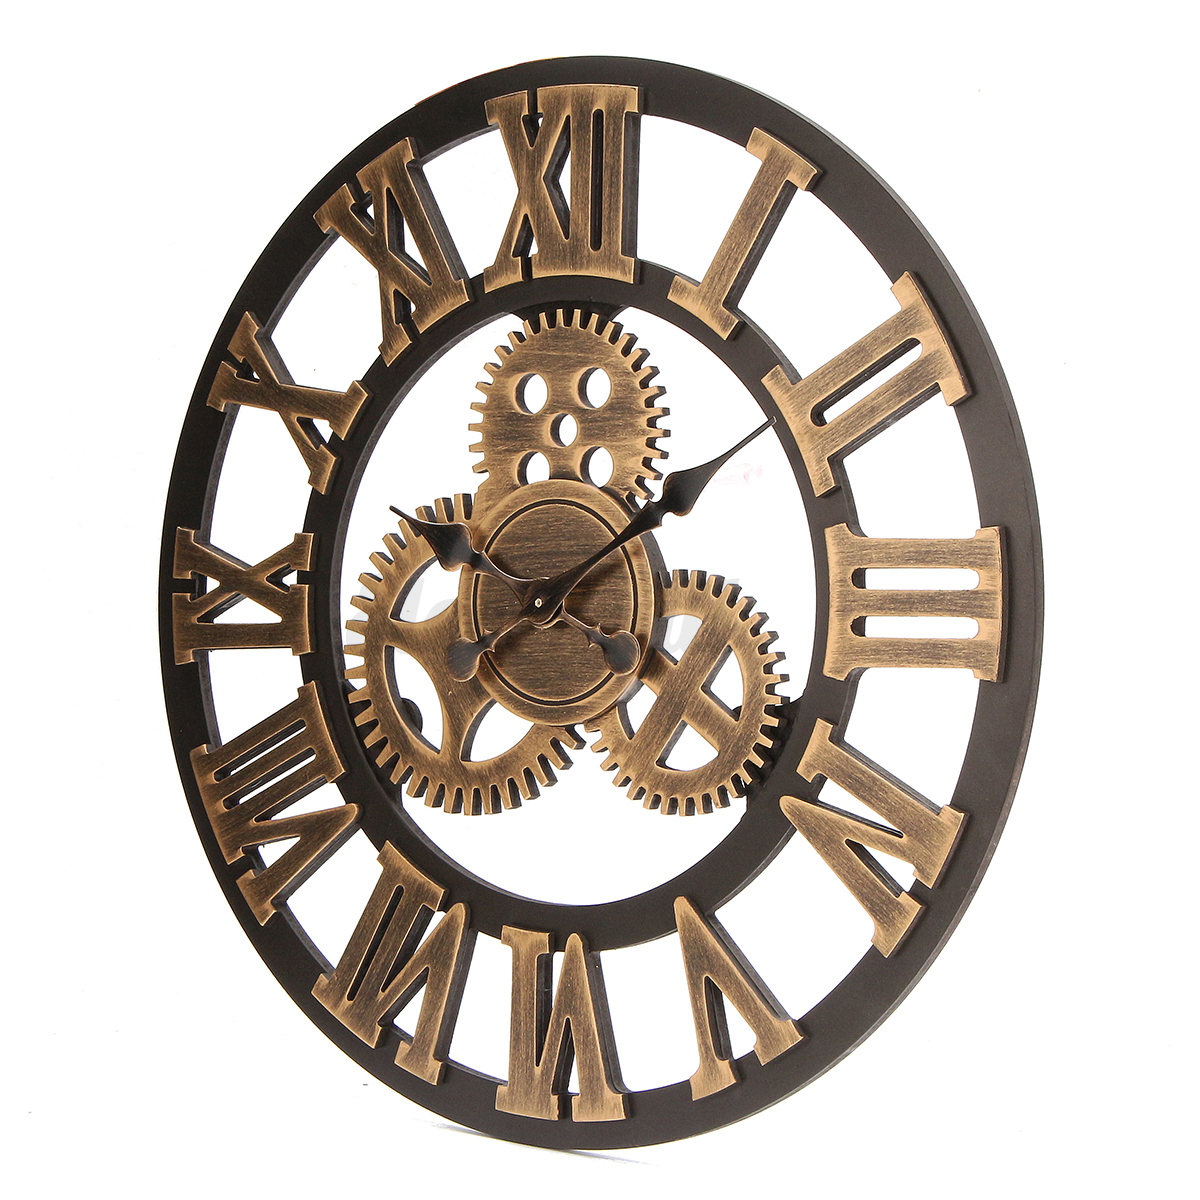 60cm 3d retro industrial large gear wall clock rustic wooden luxury vintage ebay